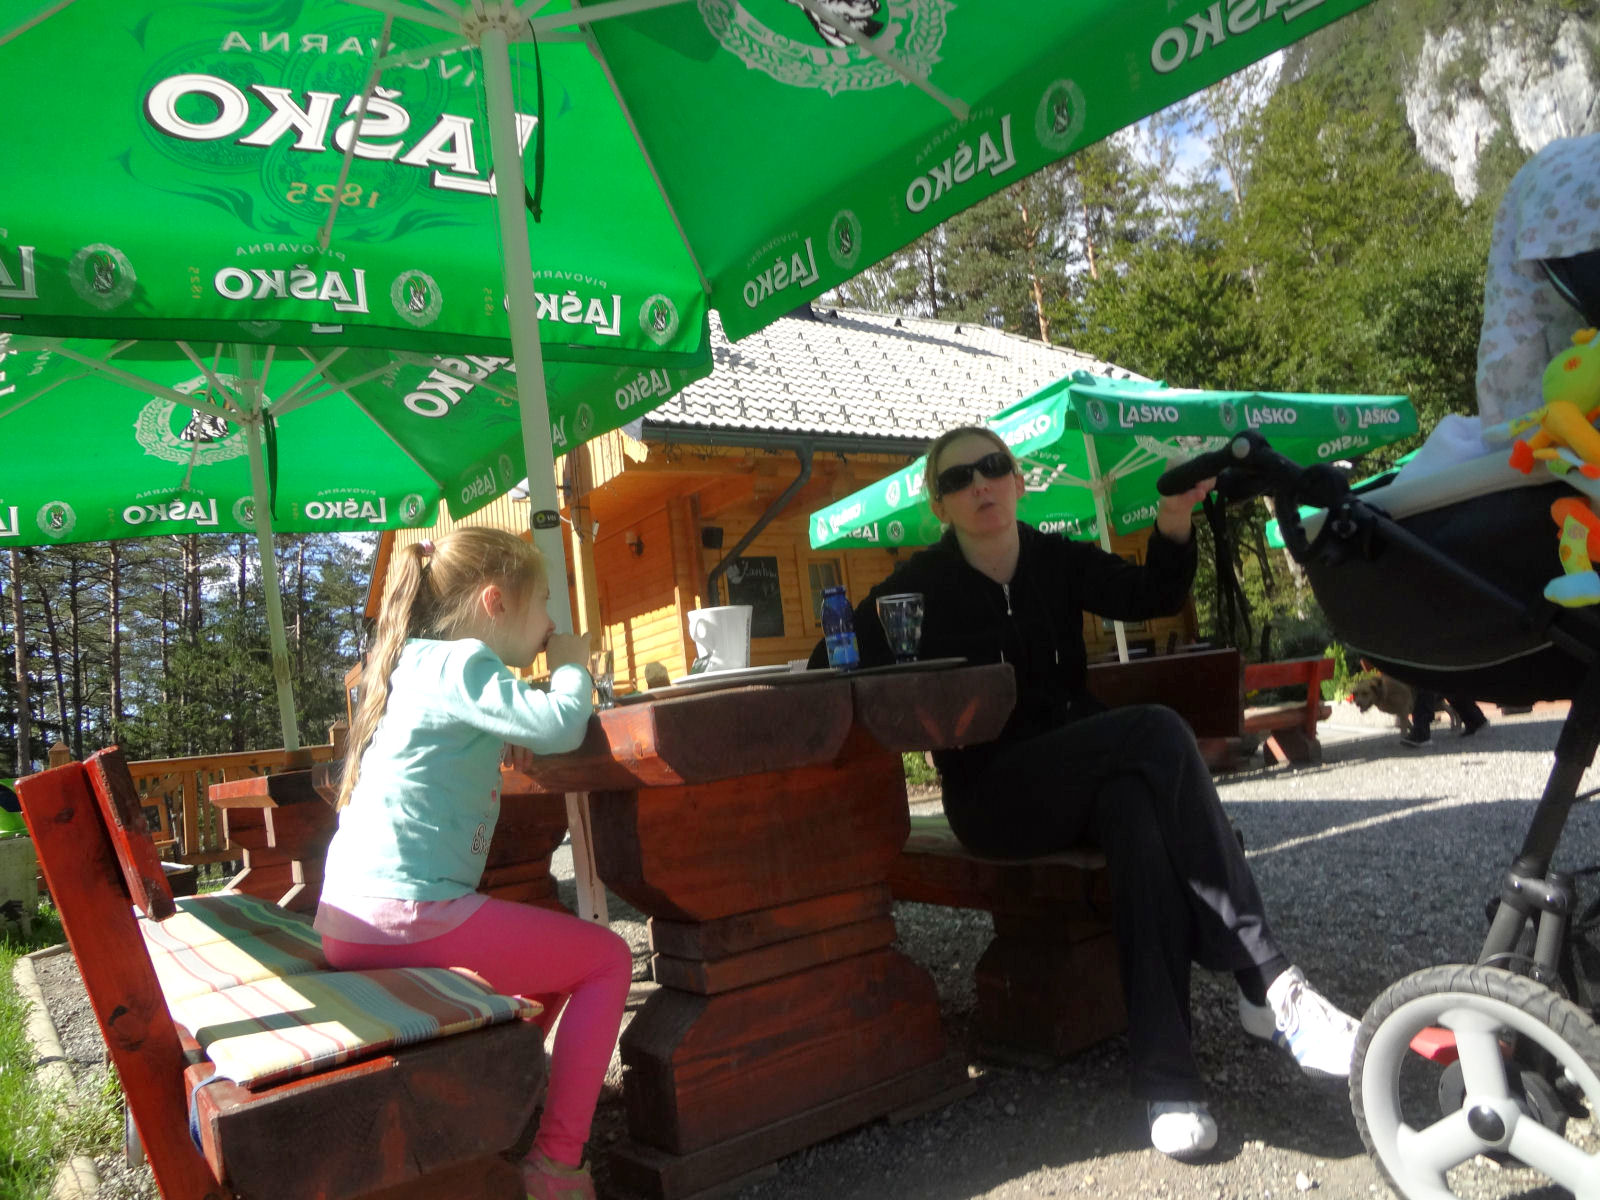 bar-zavrh-outsise-06-2015